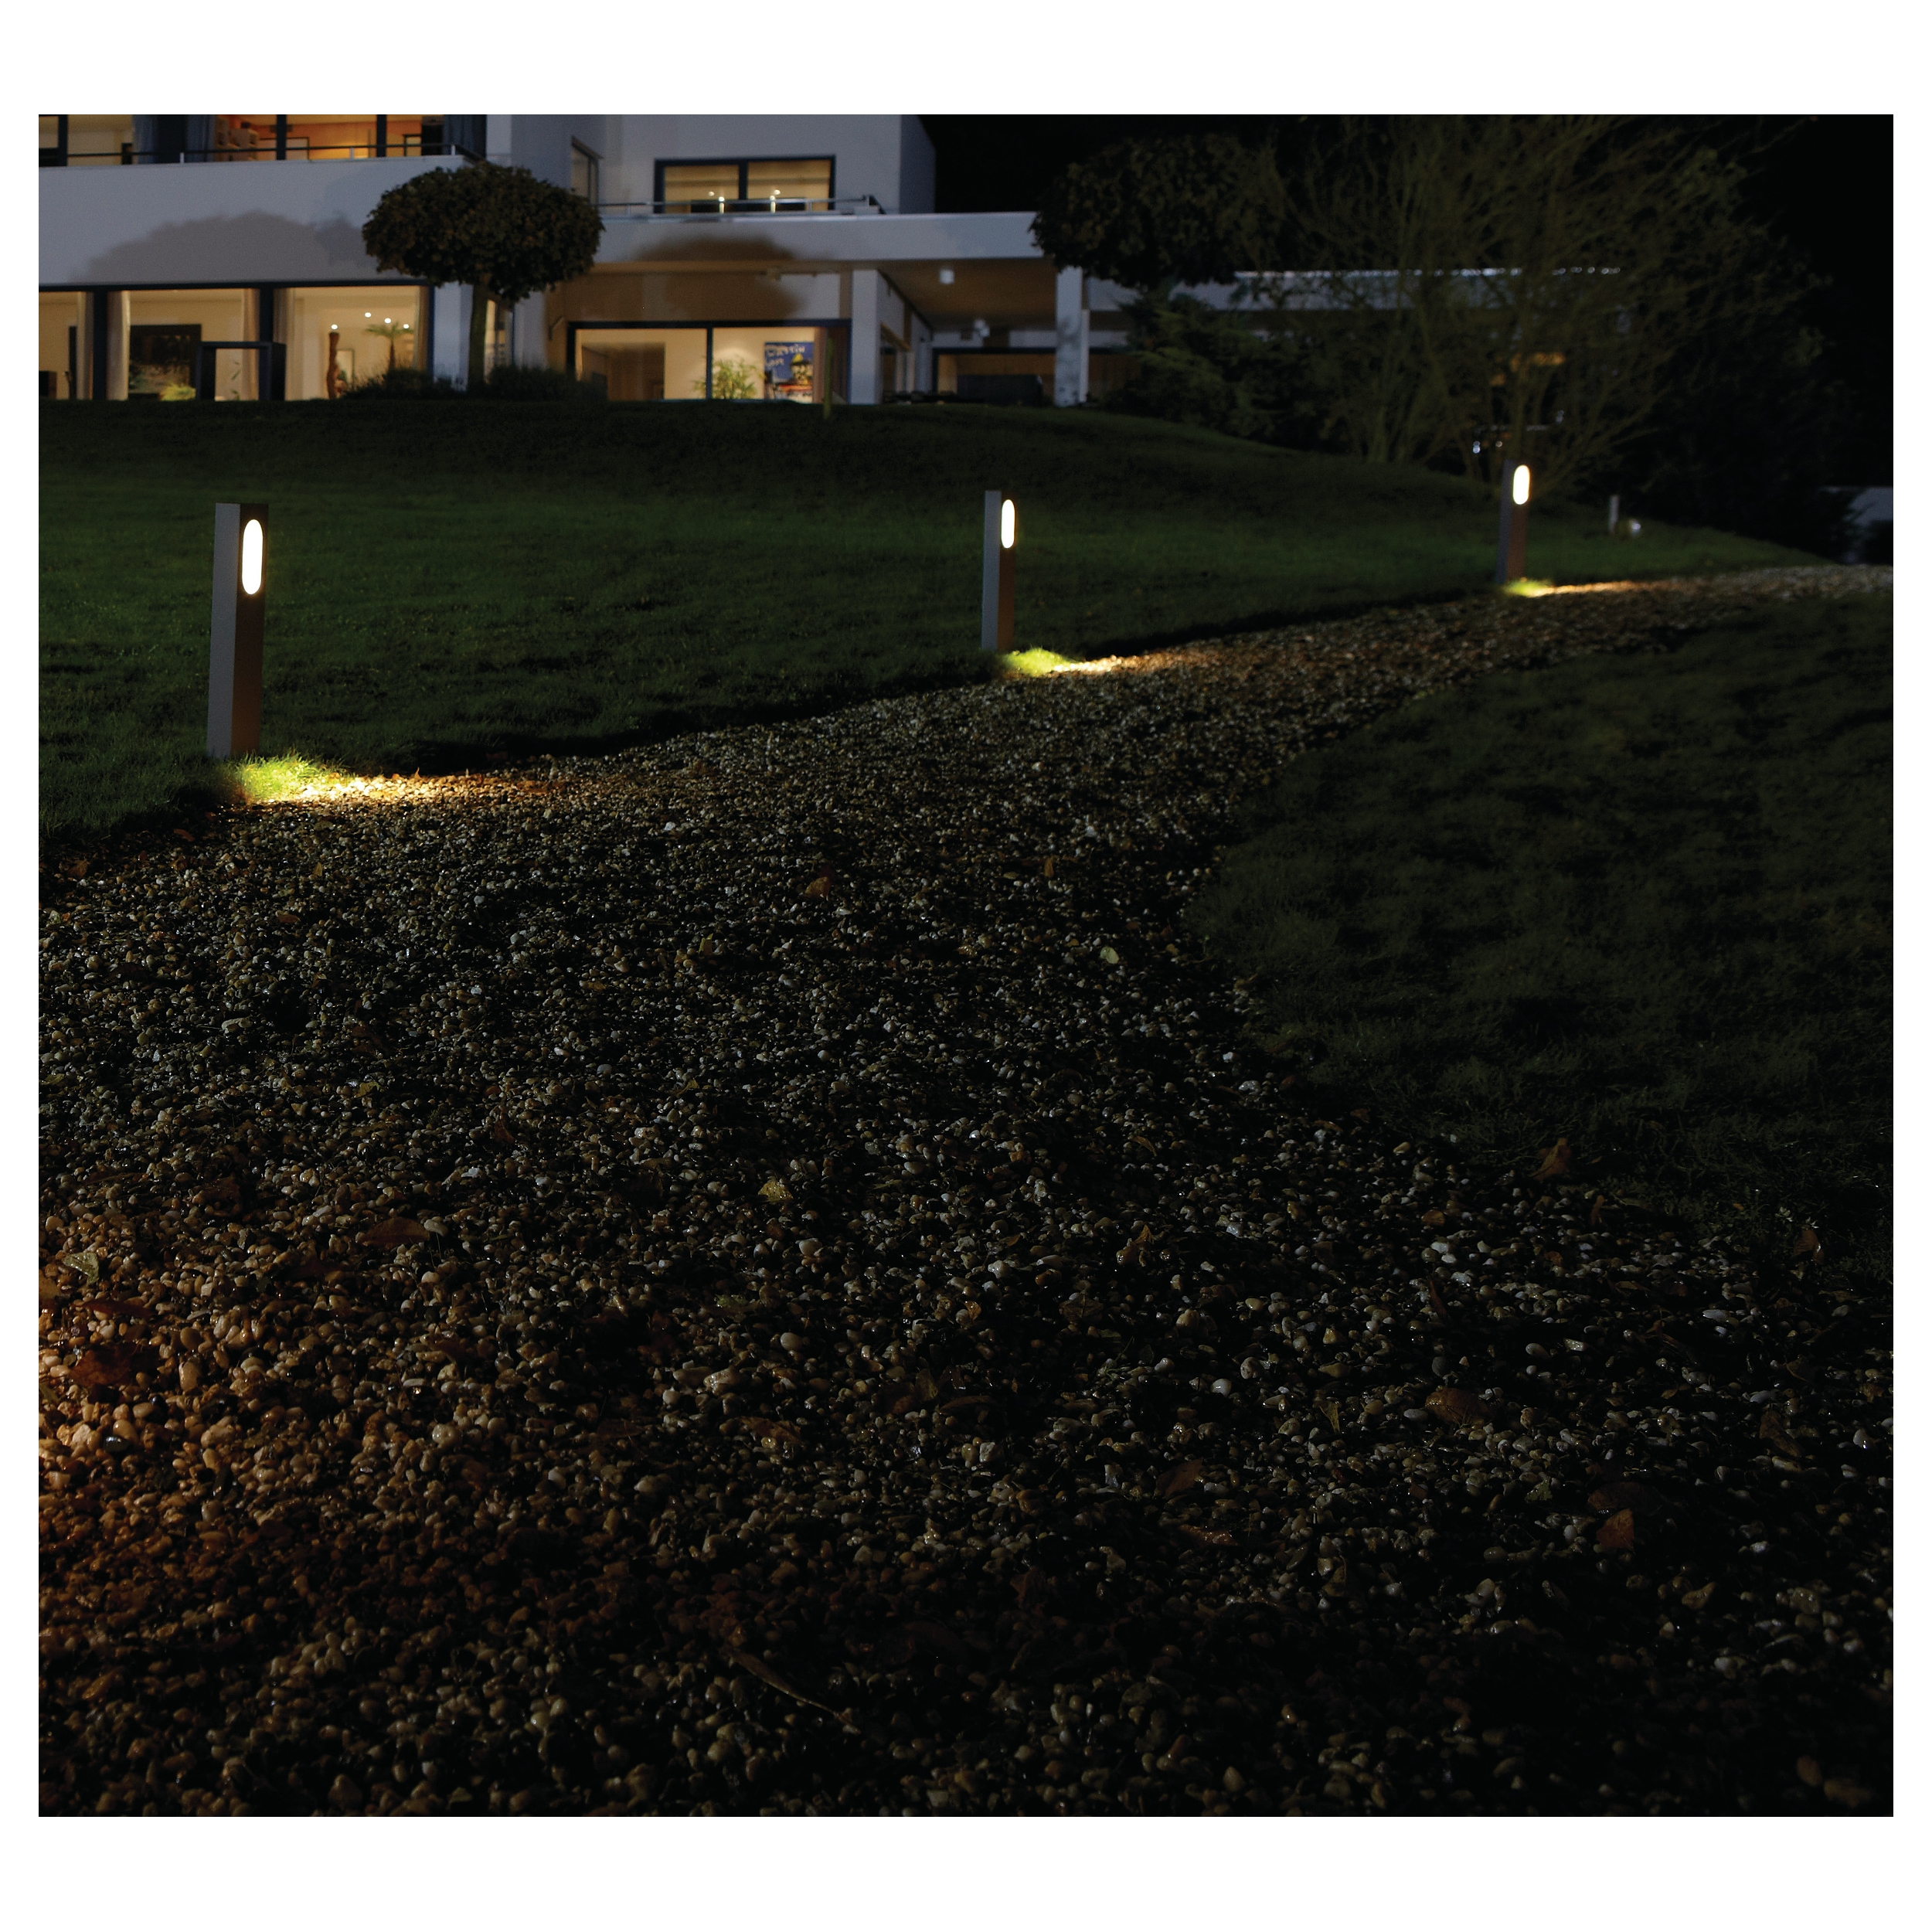 philips ledino borne potelet ext rieur moderne lampe led 168179316 ebay. Black Bedroom Furniture Sets. Home Design Ideas